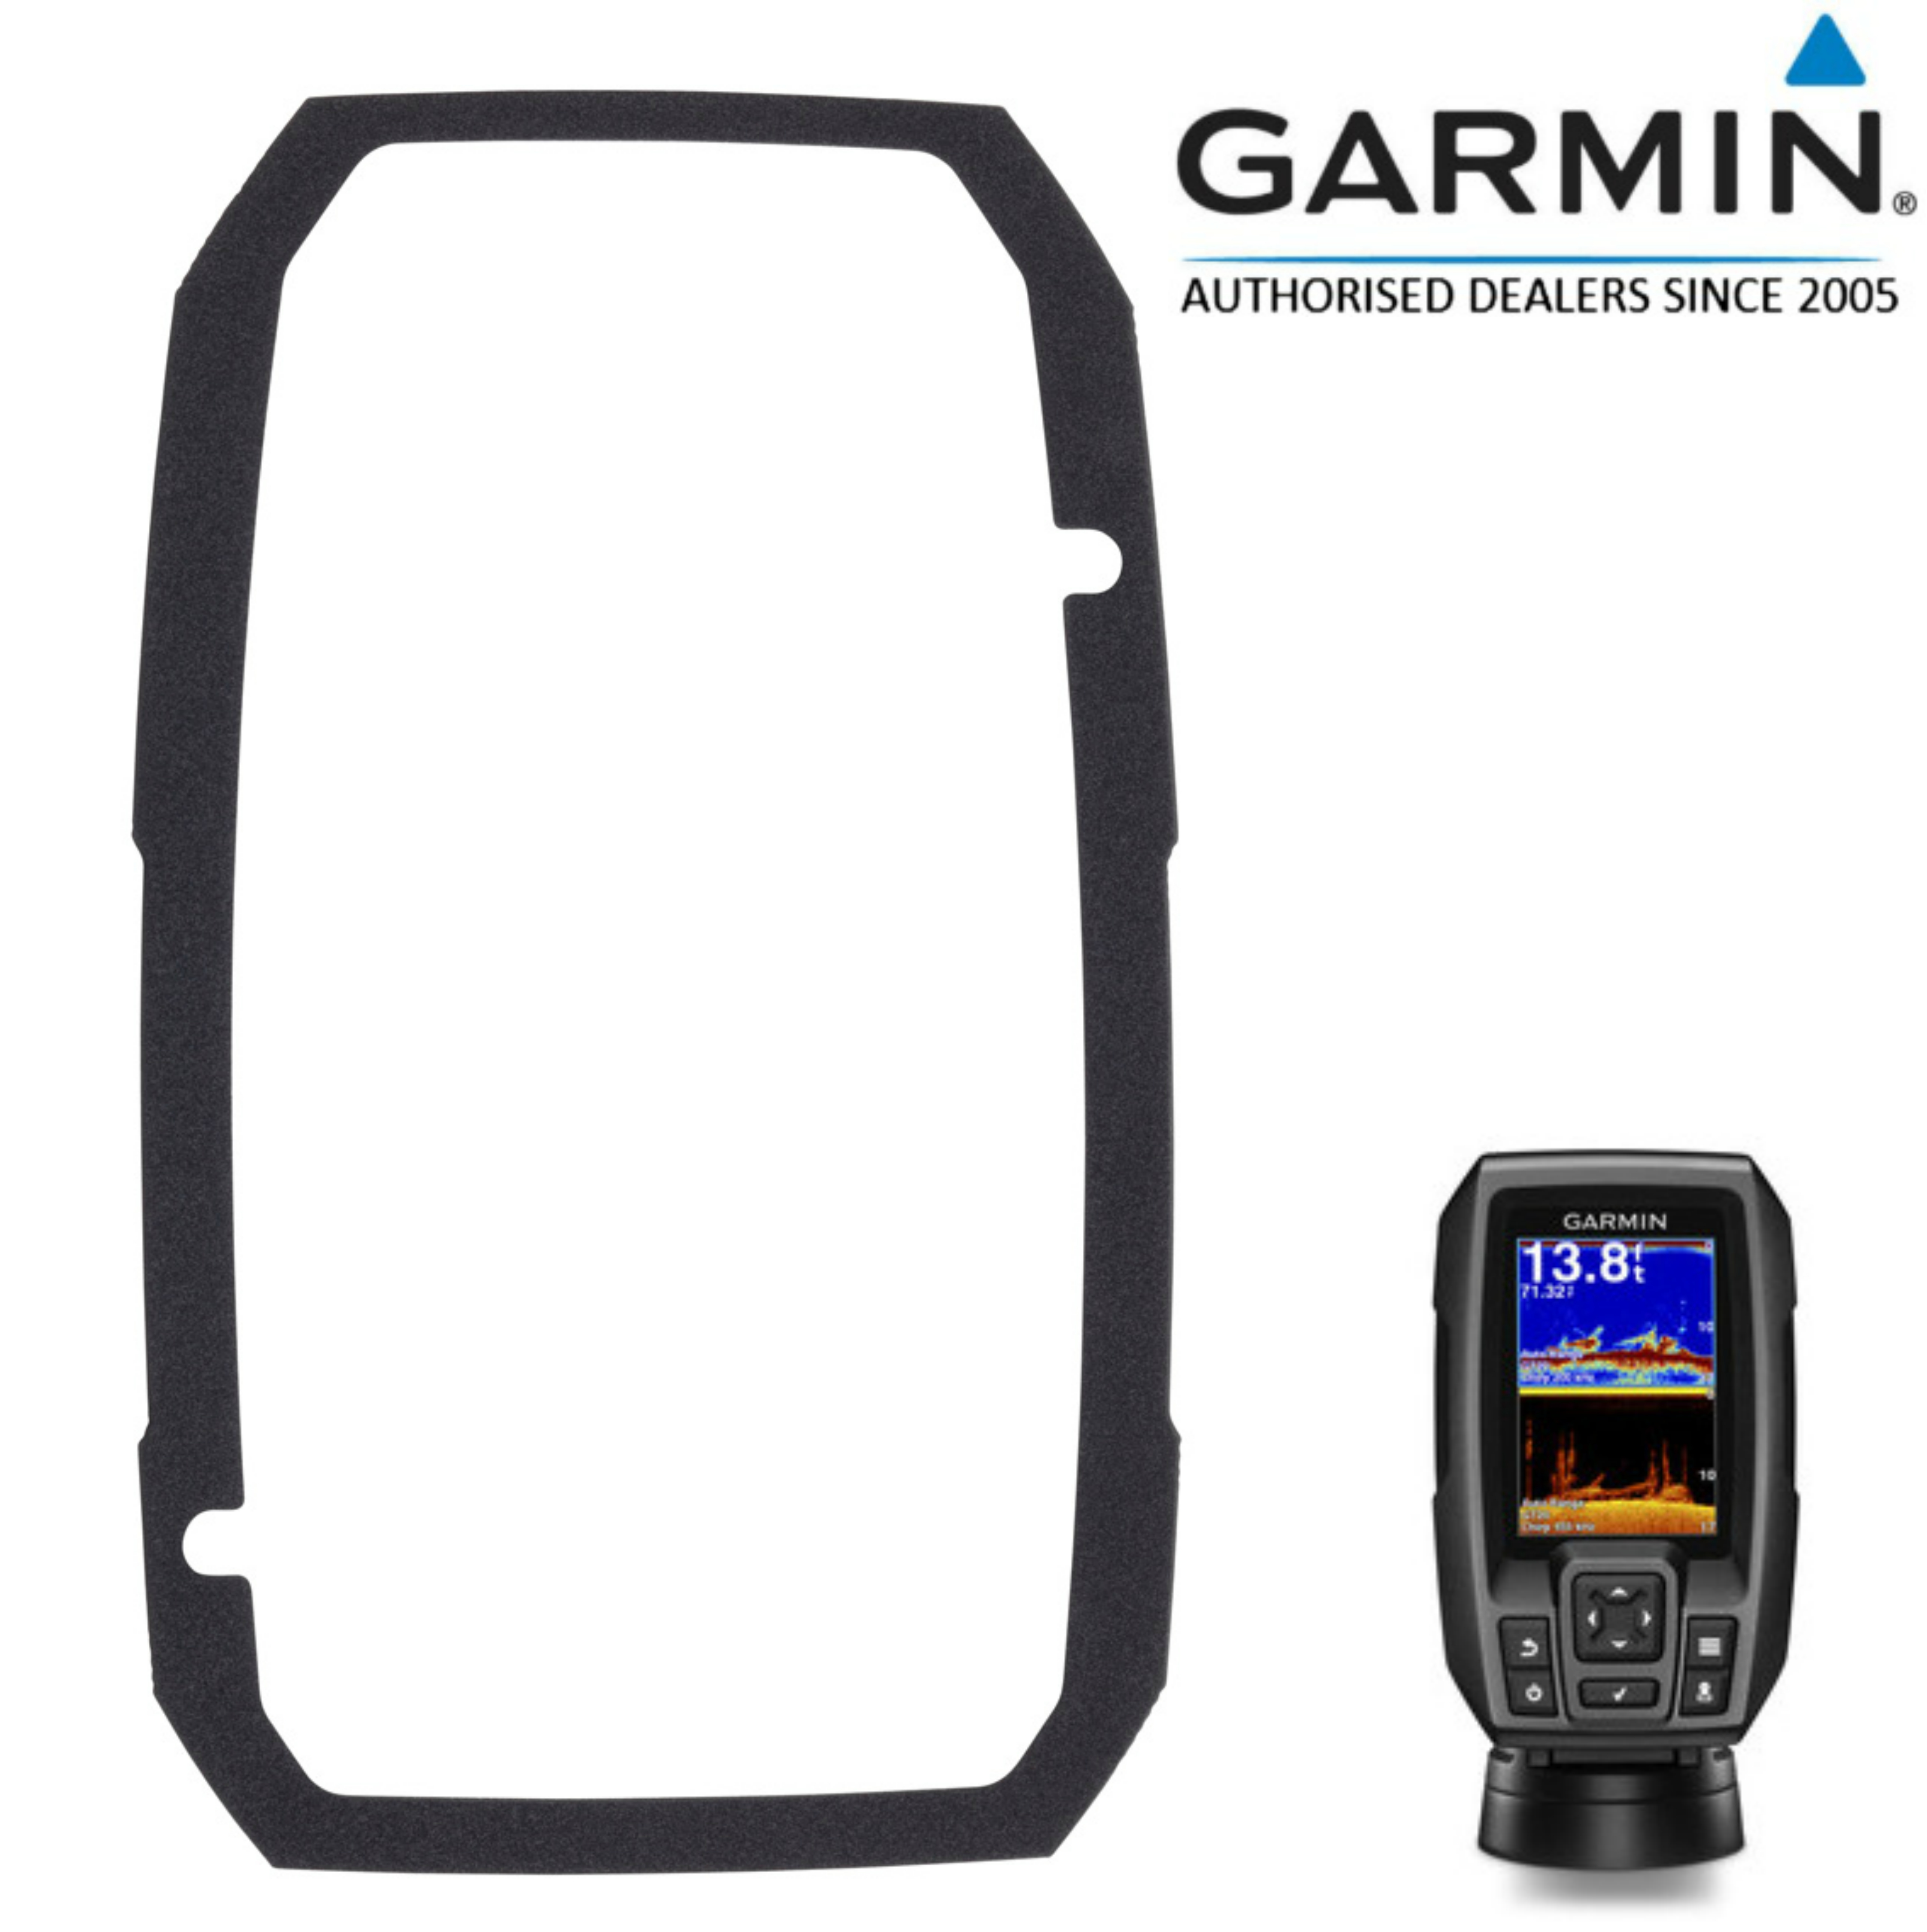 Garmin-0101244000|Flush Mount Kit|Easy Installation|For STRIKER 4/4cv|In Marine